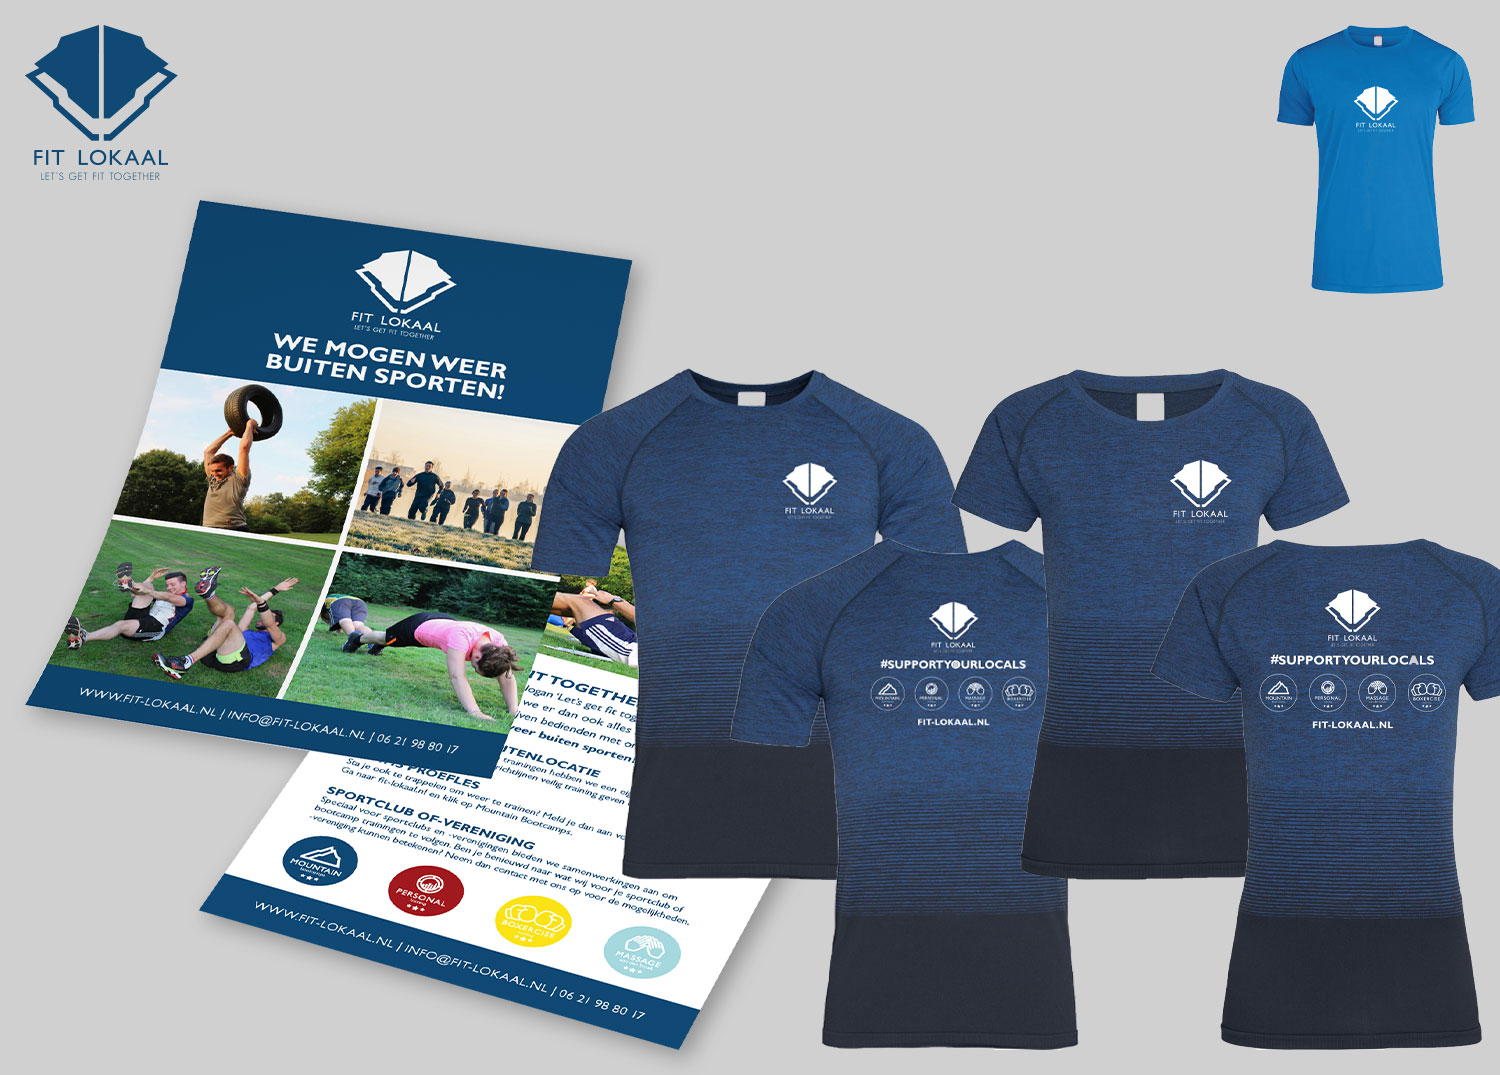 Flyer & Shirt Fit-Lokaal